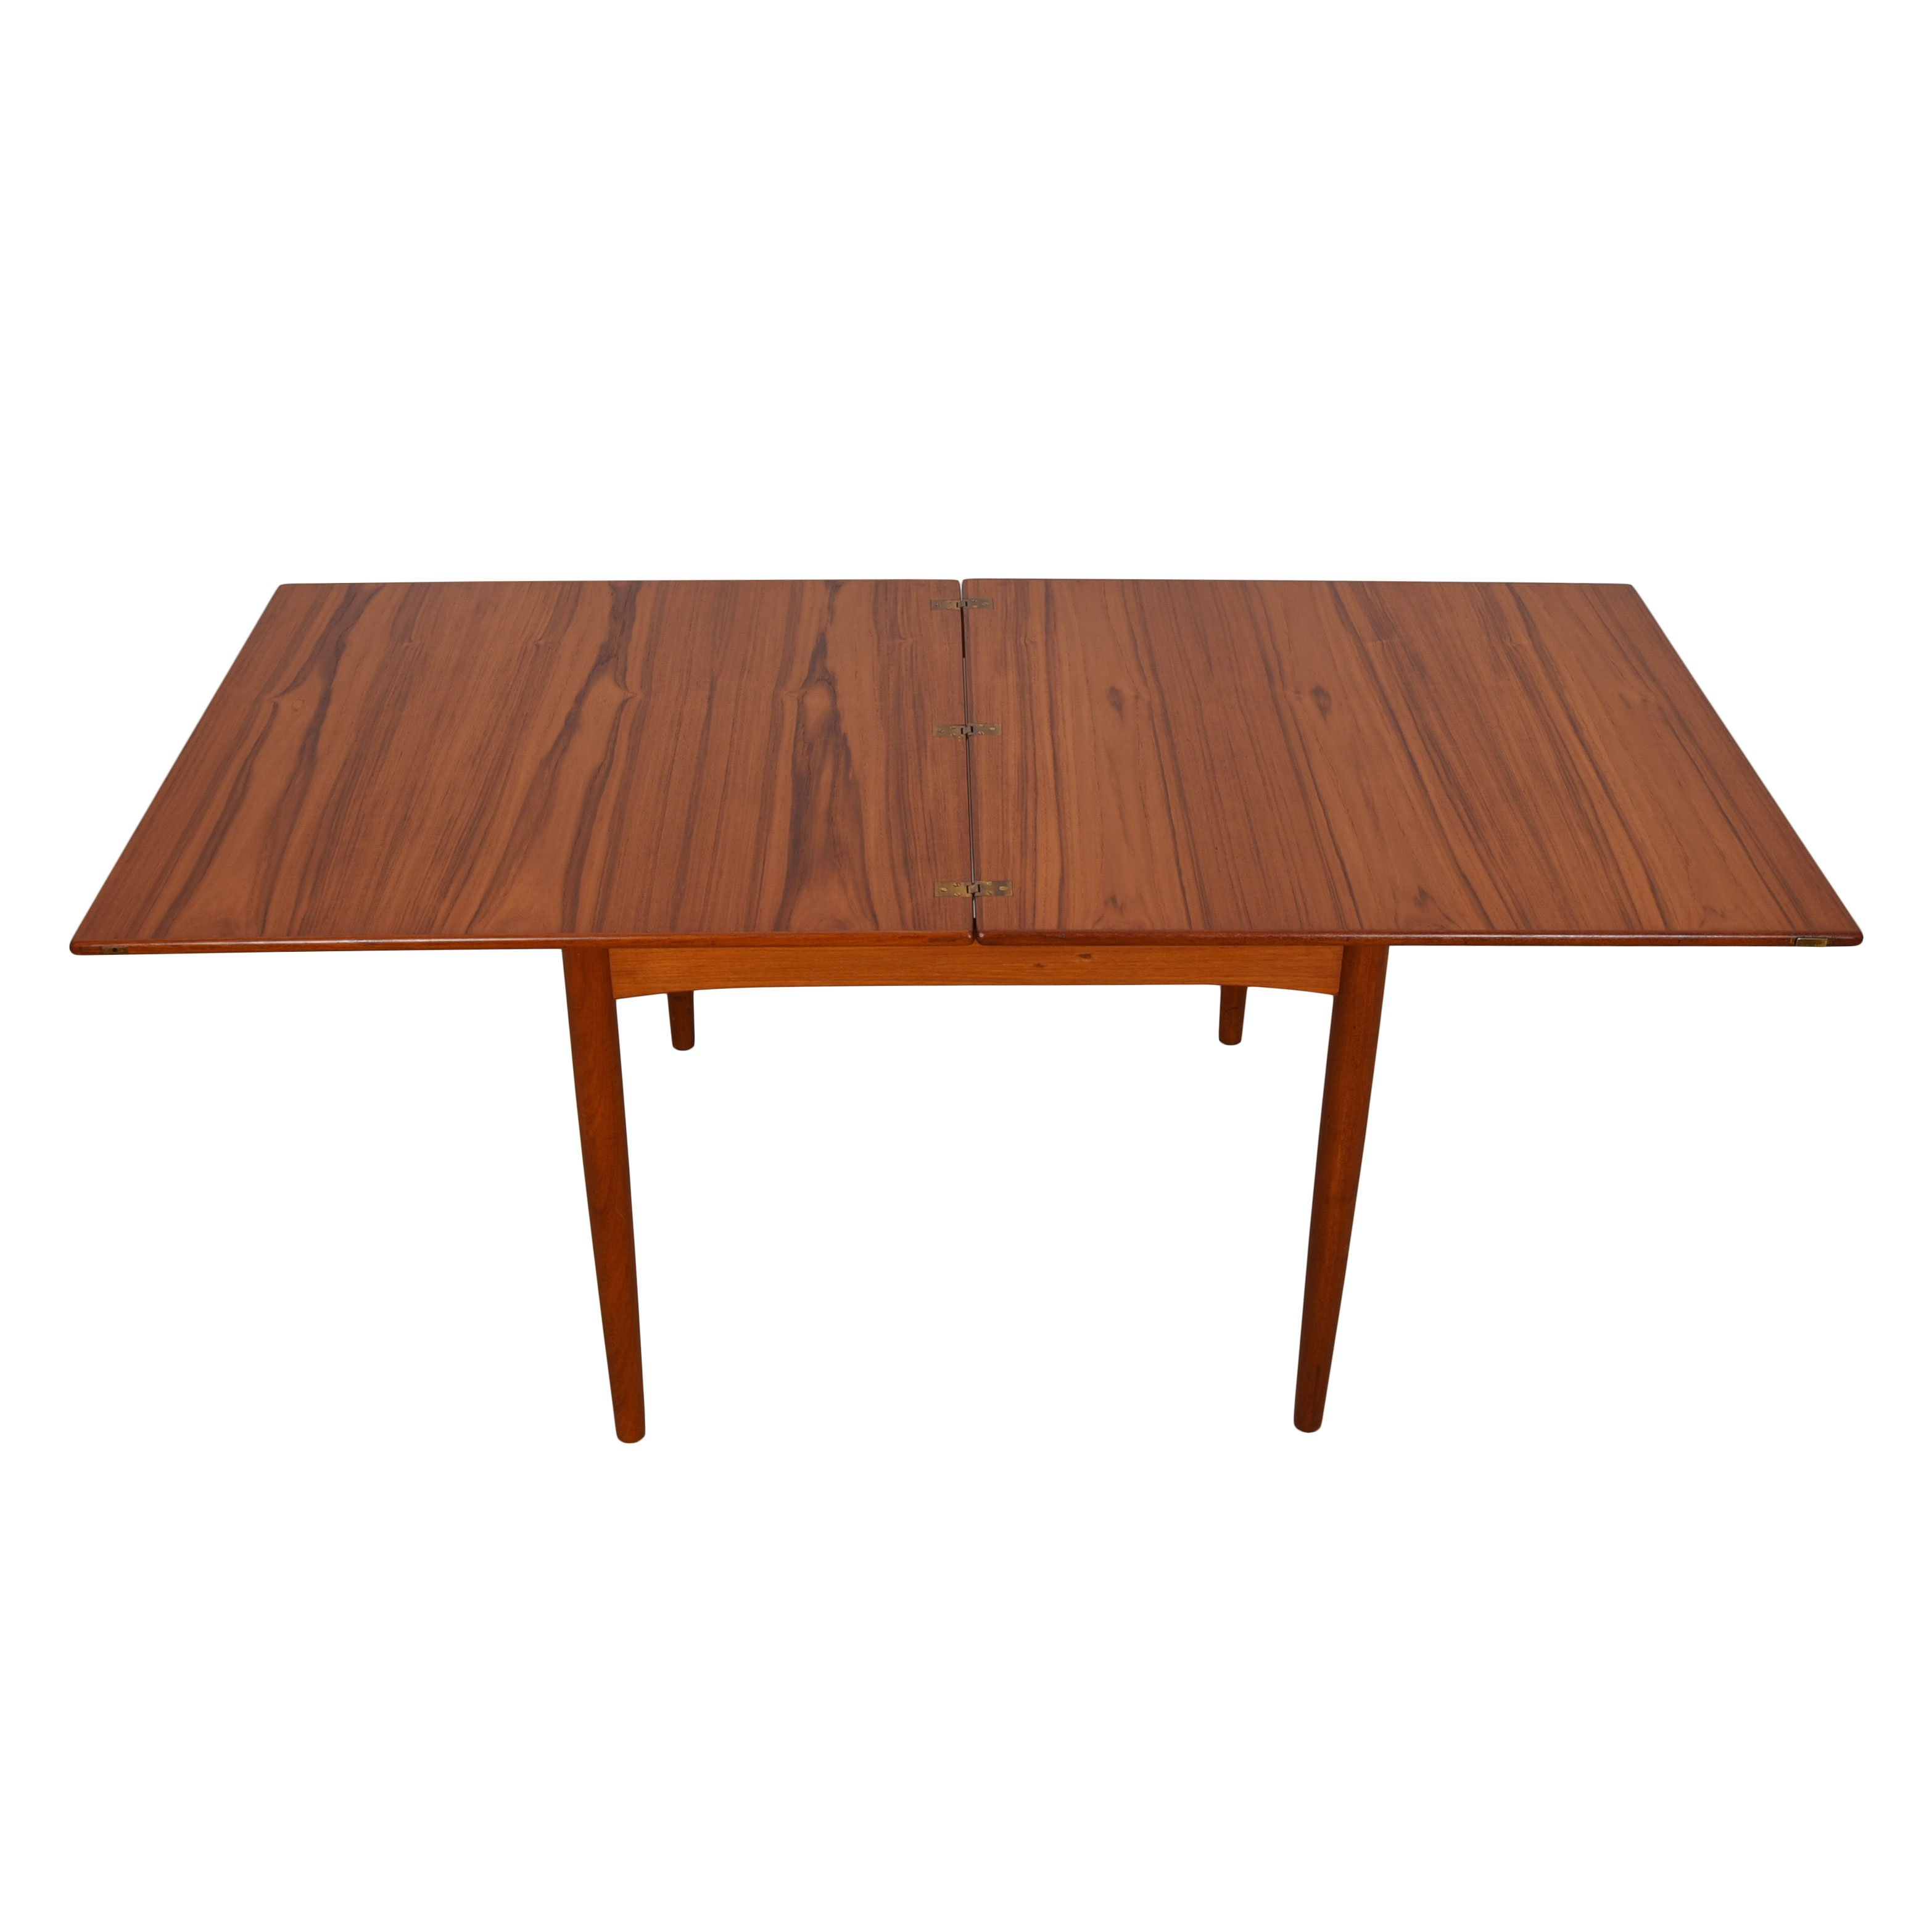 Square-to-Rectangle (35.5″ – 71″) Danish Teak Compact Expanding Dining Table.